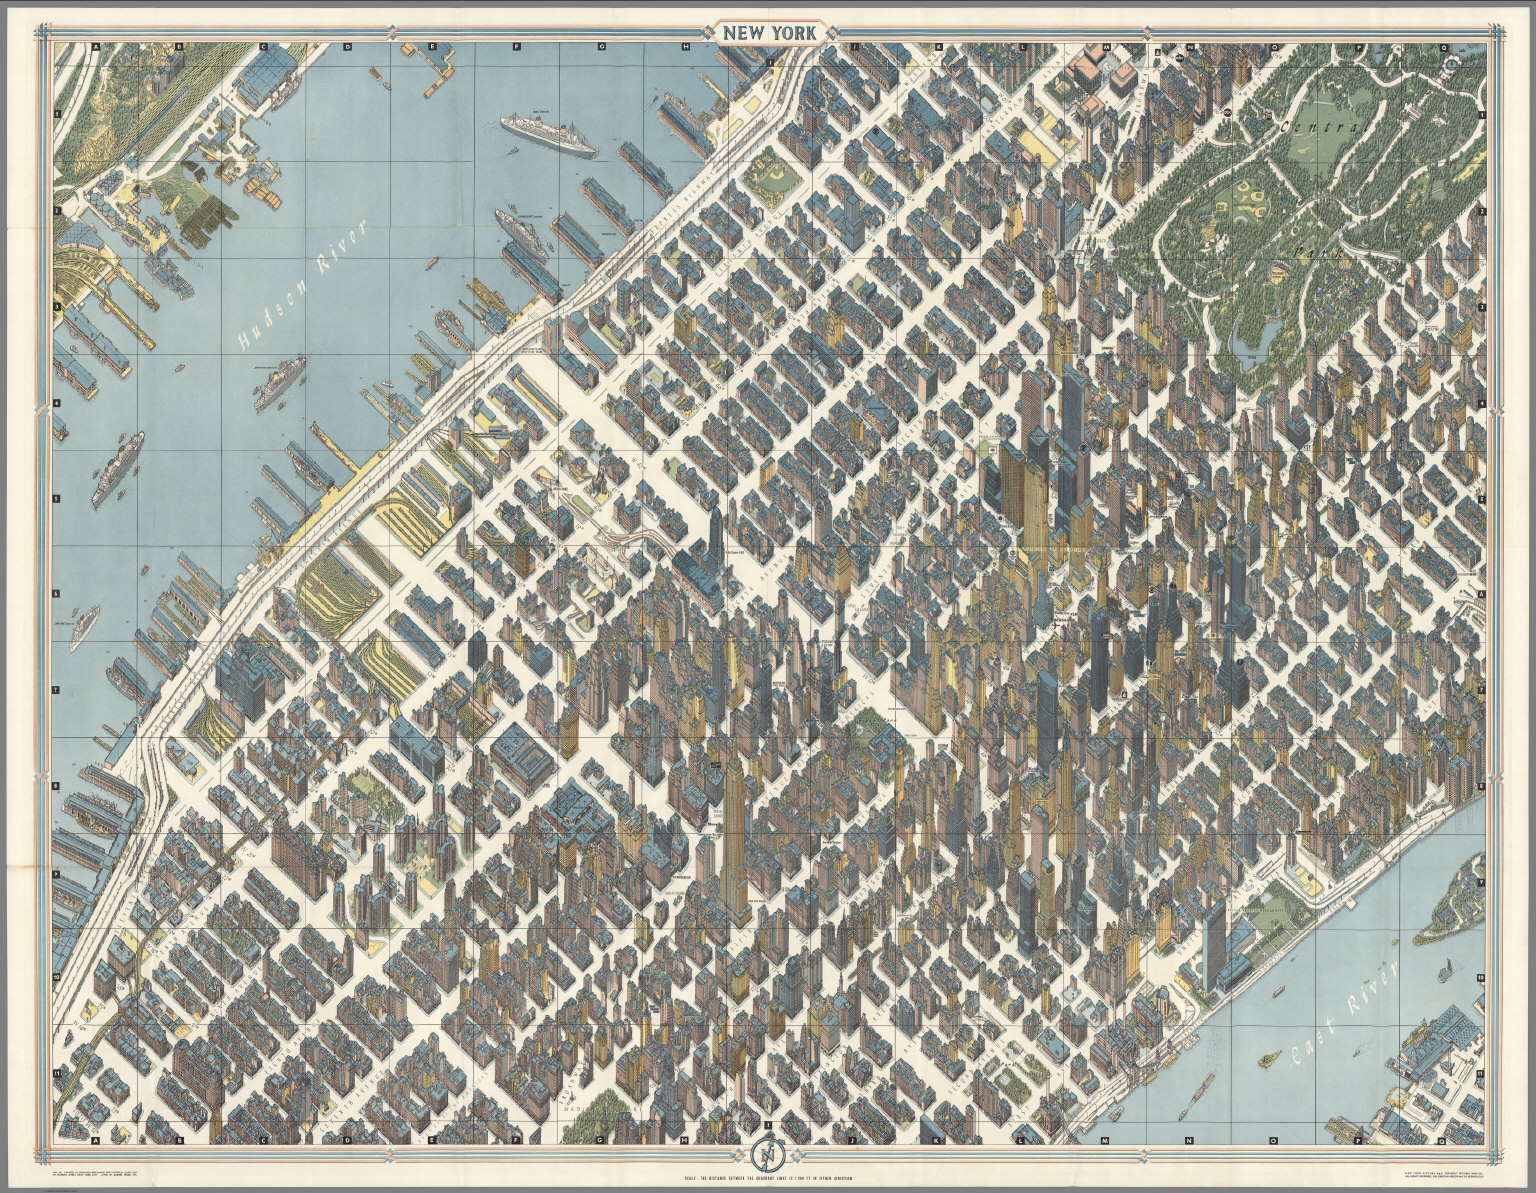 New York City Picture Map A D Map Of Midtown Manhattan - New york map in 3d